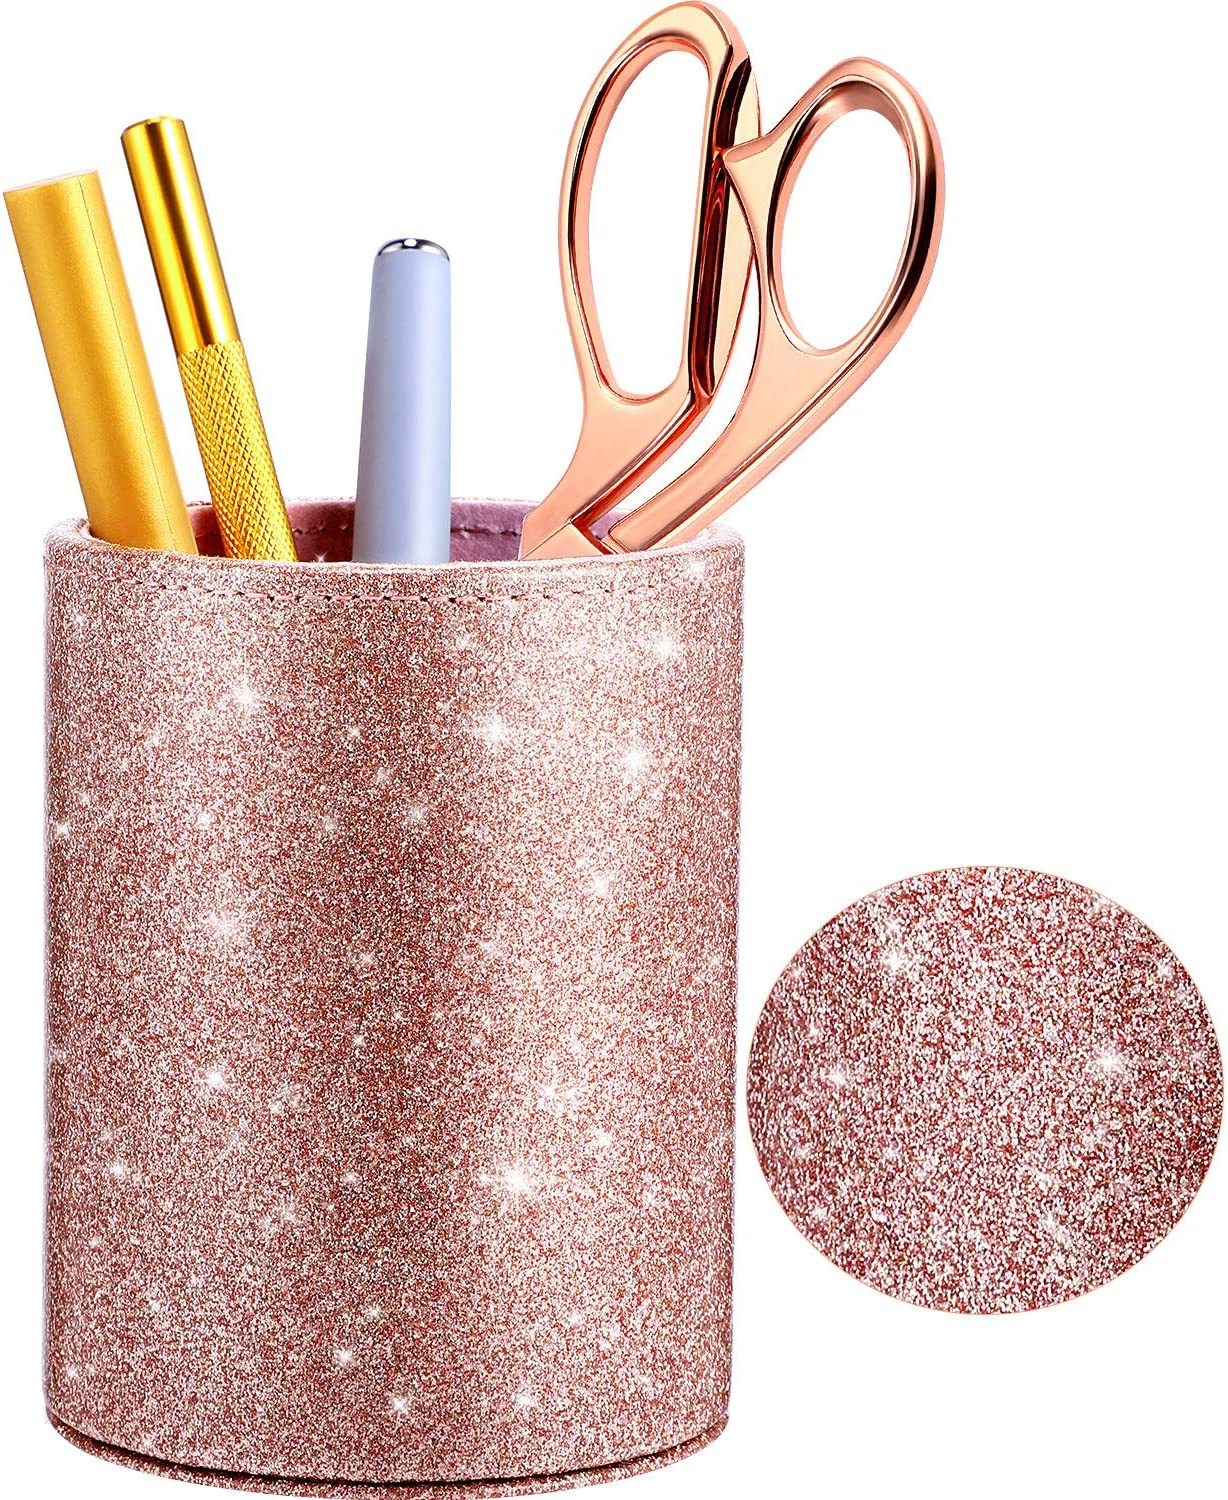 PU Glitter Pen Holder Pencil Cup Shiny for Women Girls, Luxury Makeup Brush Holder Pu Leather Organizer Cup Gift for Desk Office Classroom Home (Rose Gold)